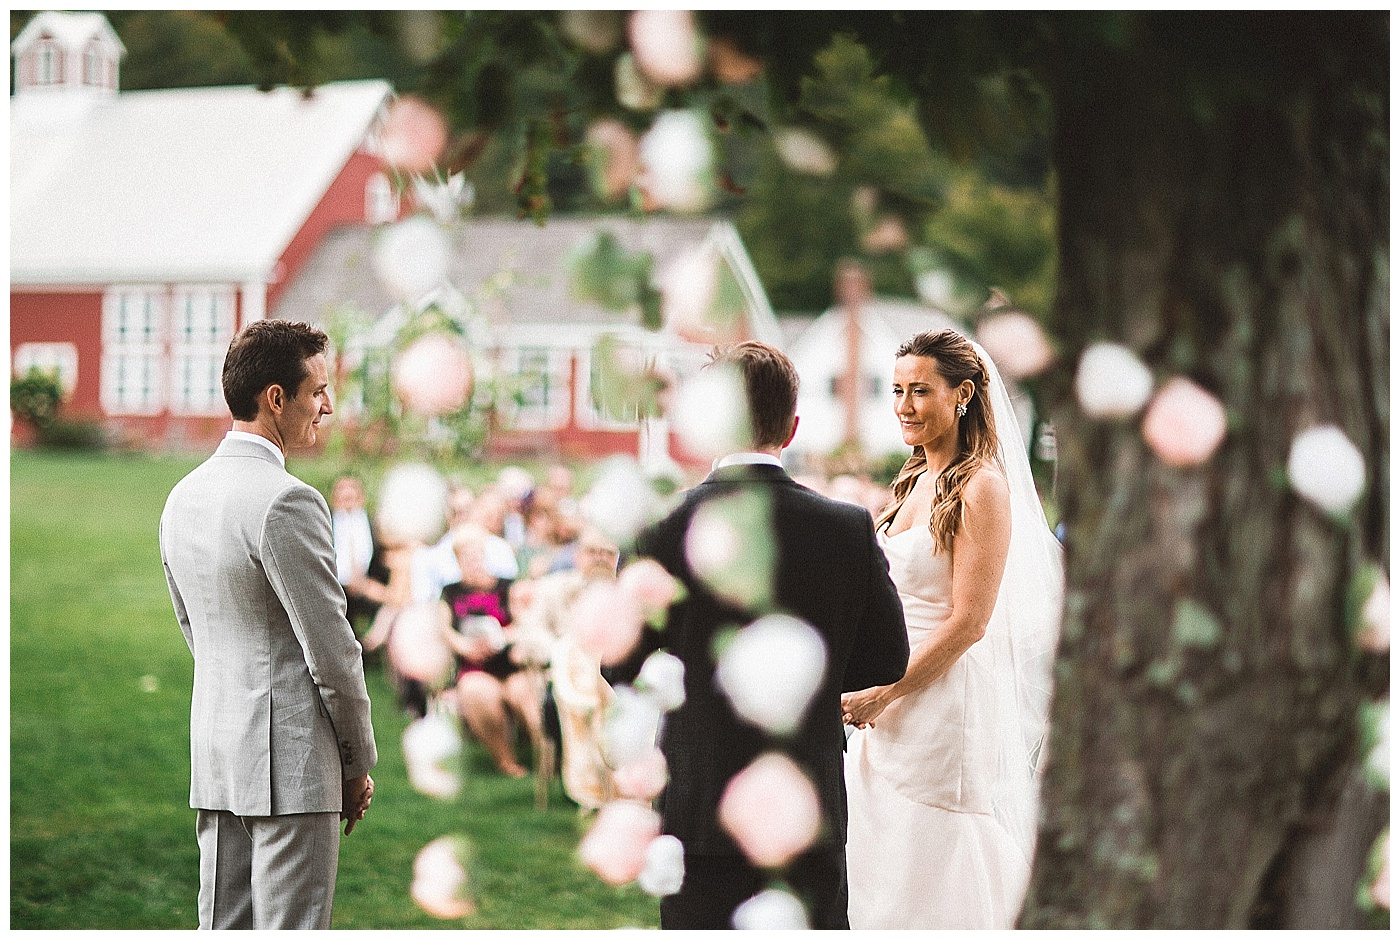 Rustic_Chic_Country_Wedding_Ceremony